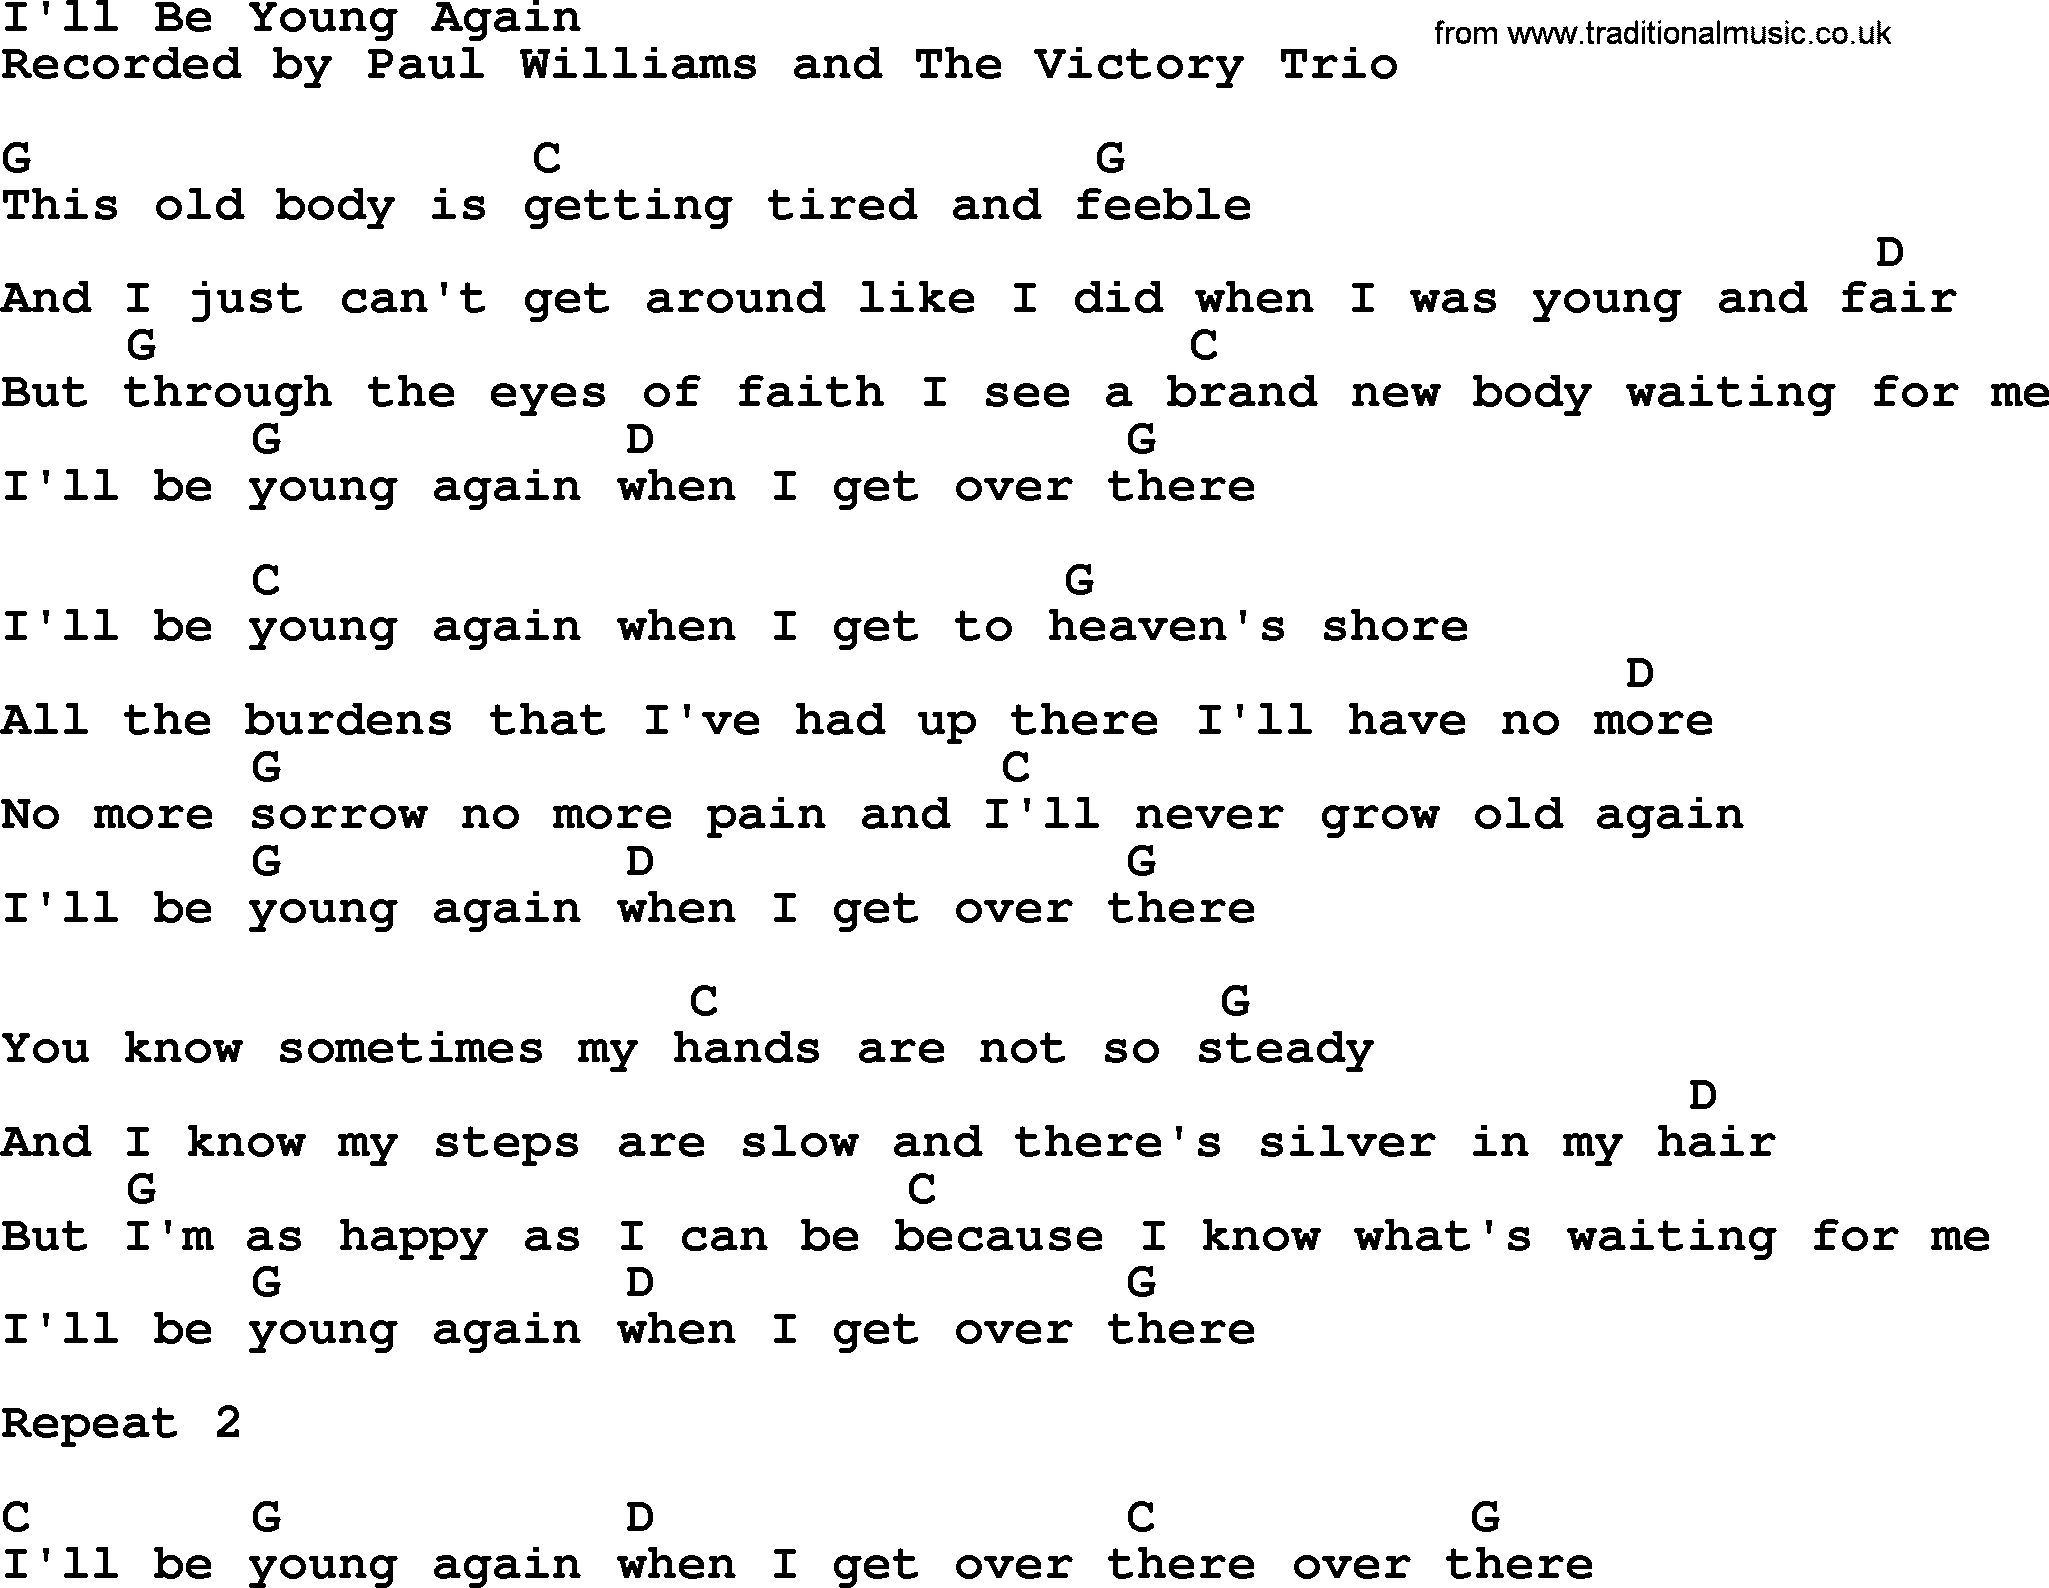 Ill be young again bluegrass lyrics with chords bluegrass song ill be young again lyrics and chords hexwebz Images